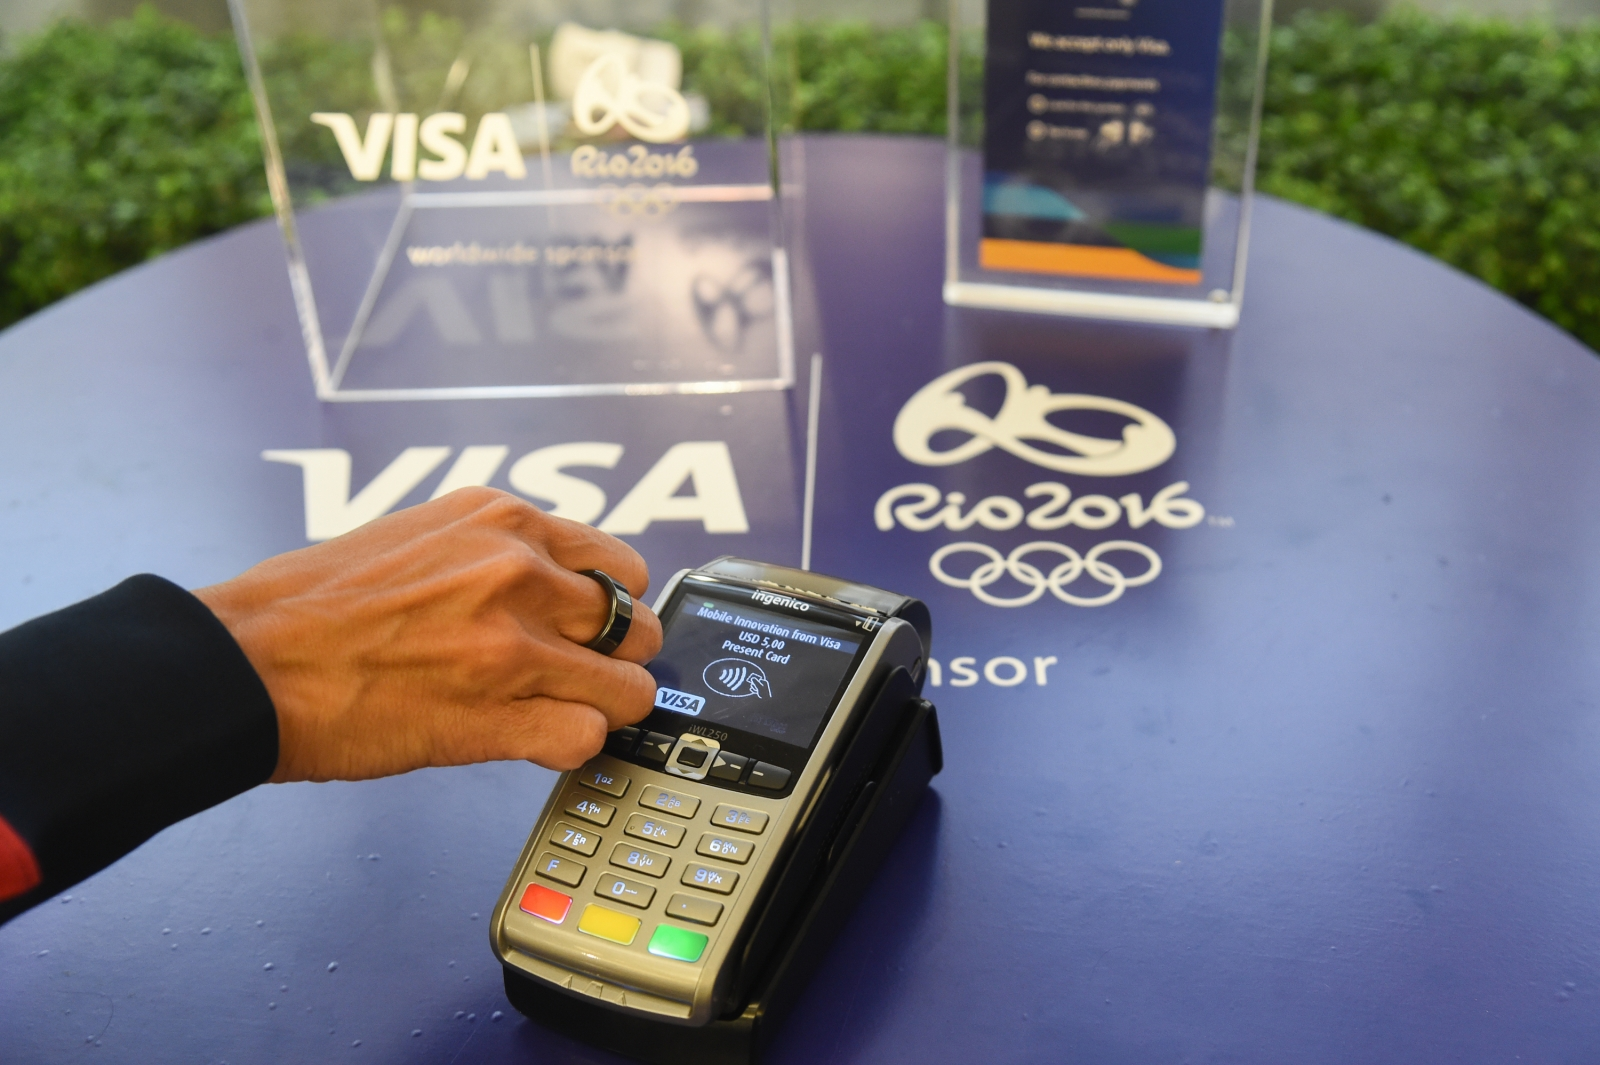 Visa launching NFC payments ring